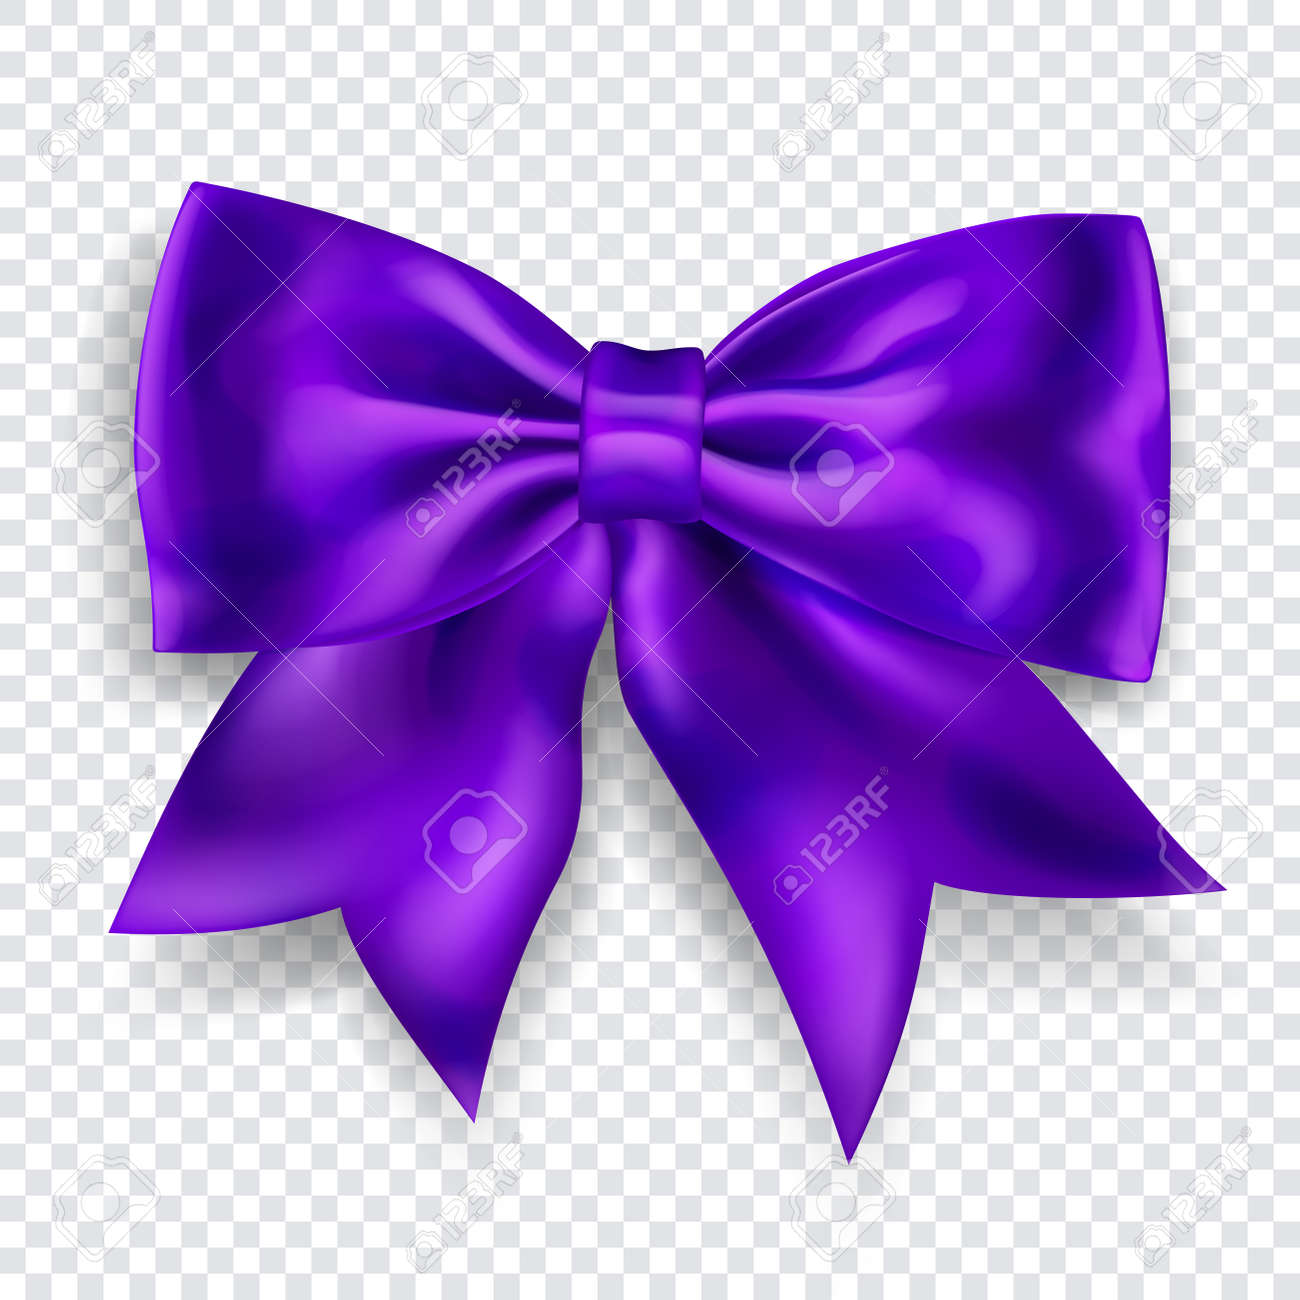 Beautiful big bow made of purple ribbon with shadow on transparent background. Transparency only in vector format - 155653189